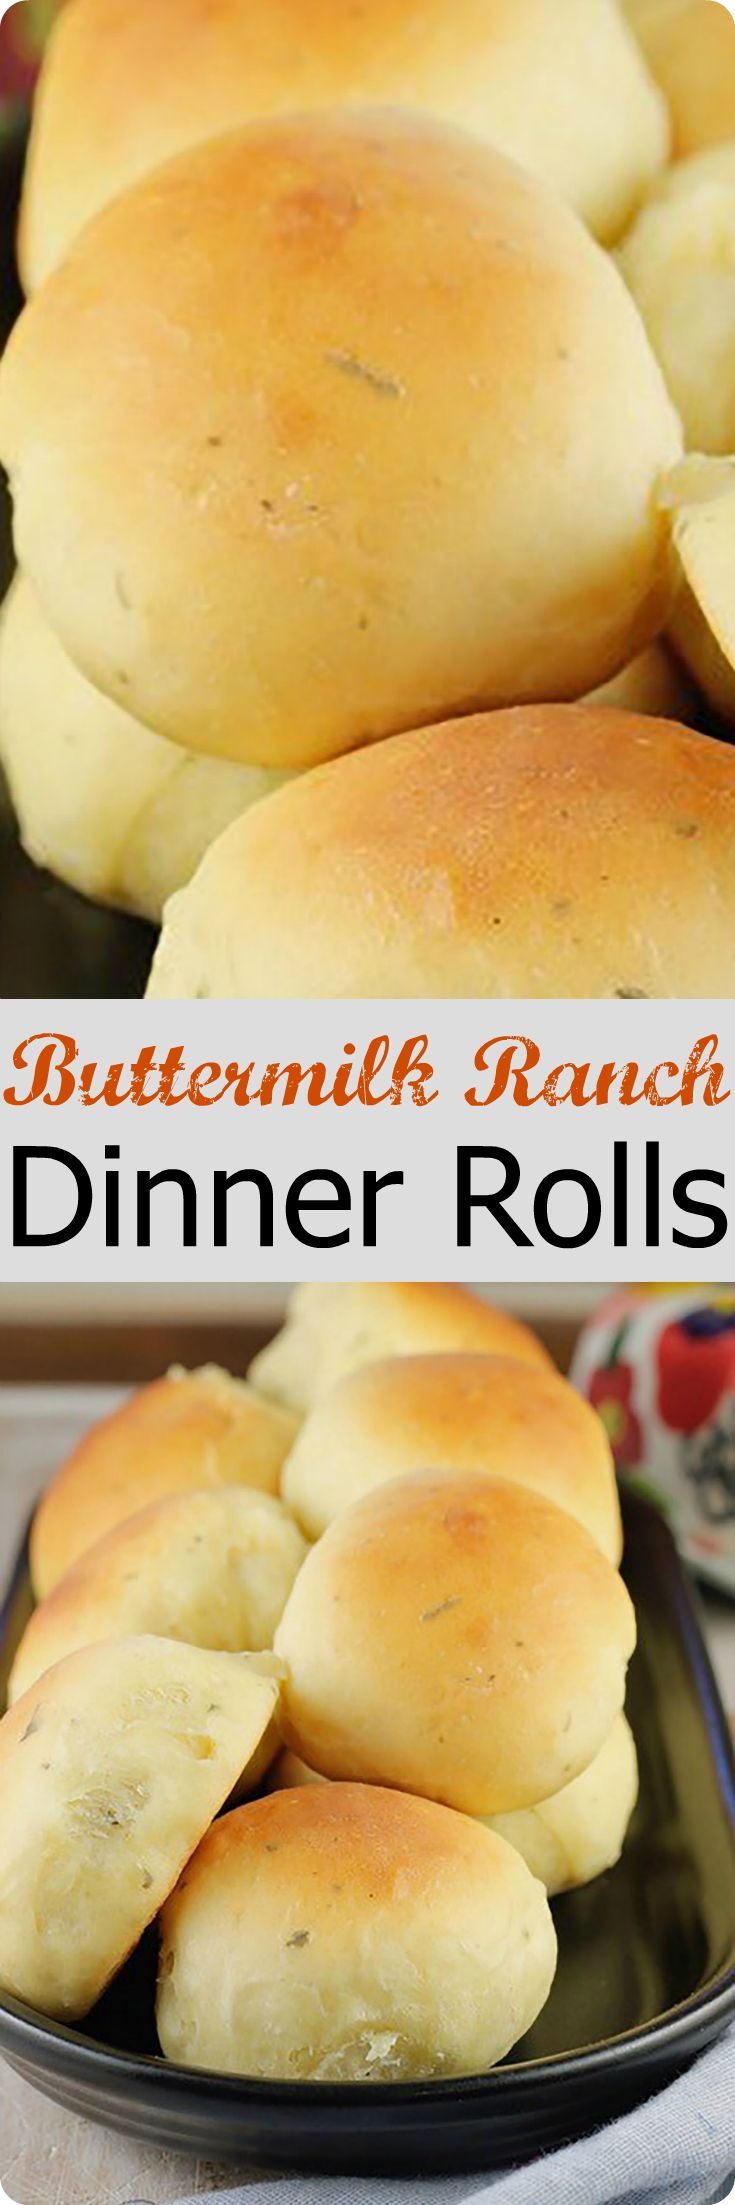 Buttermilk Ranch Dinner Rolls | A light and delicious homemade roll recipe packed with tangy flavors. They make a great addition to both every day and holiday meals. Find recipe at redstaryeast.com.